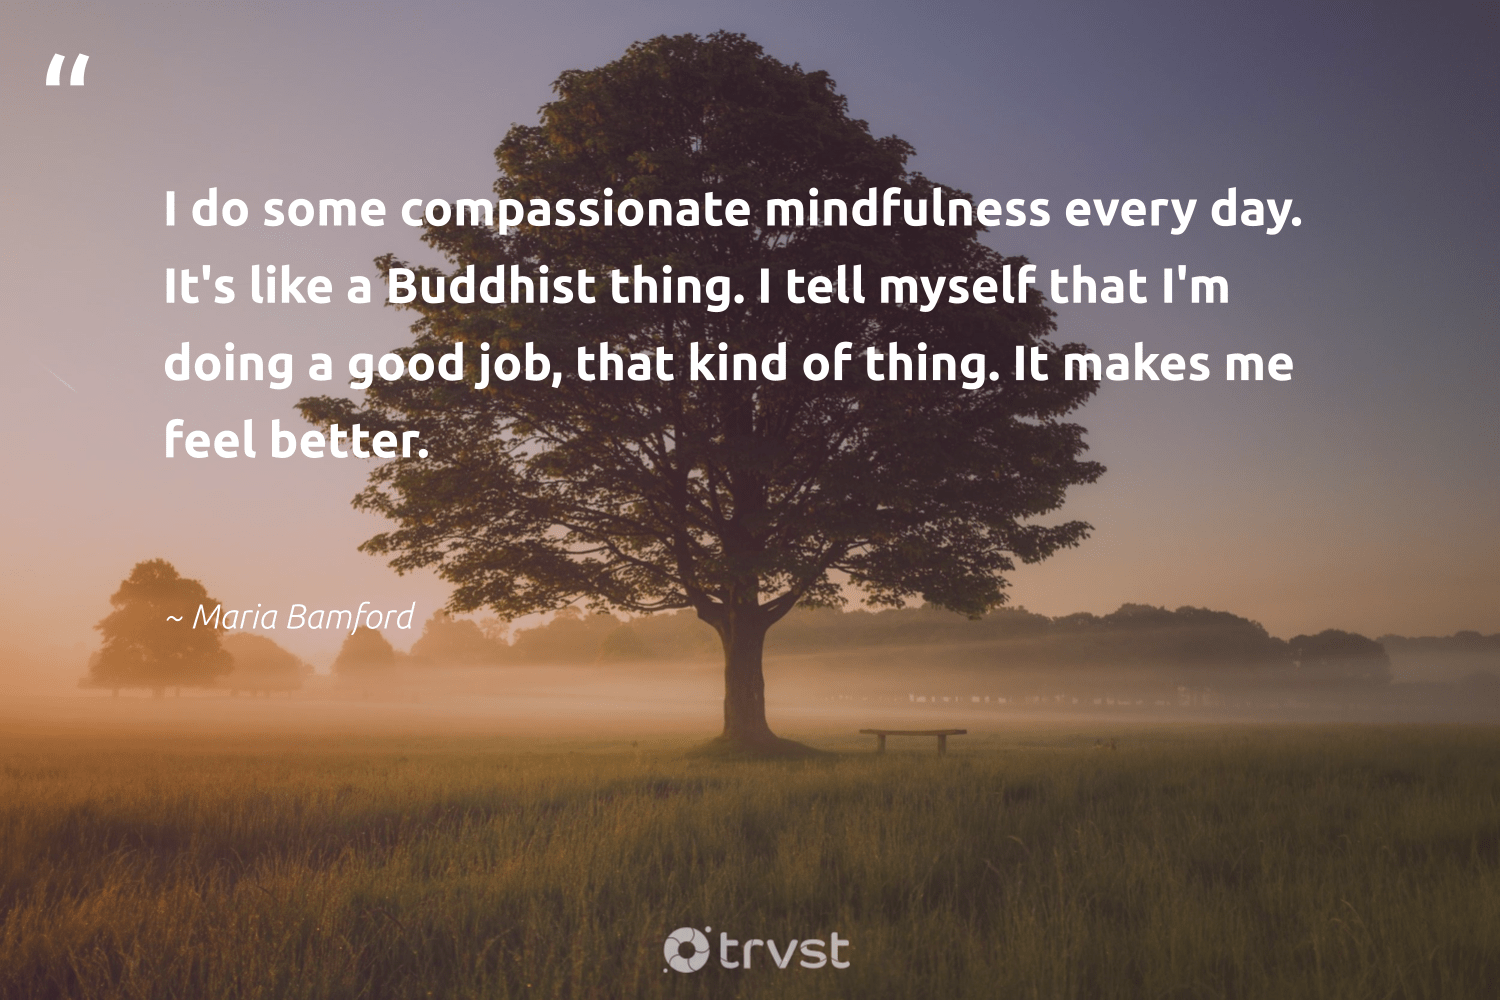 """""""I do some compassionate mindfulness every day. It's like a Buddhist thing. I tell myself that I'm doing a good job, that kind of thing. It makes me feel better.""""  - Maria Bamford #trvst #quotes #mindfulness #entrepreneurmindset #positivity #health #bethechange #goals #kindness #changemakers #collectiveaction #growthmindset"""